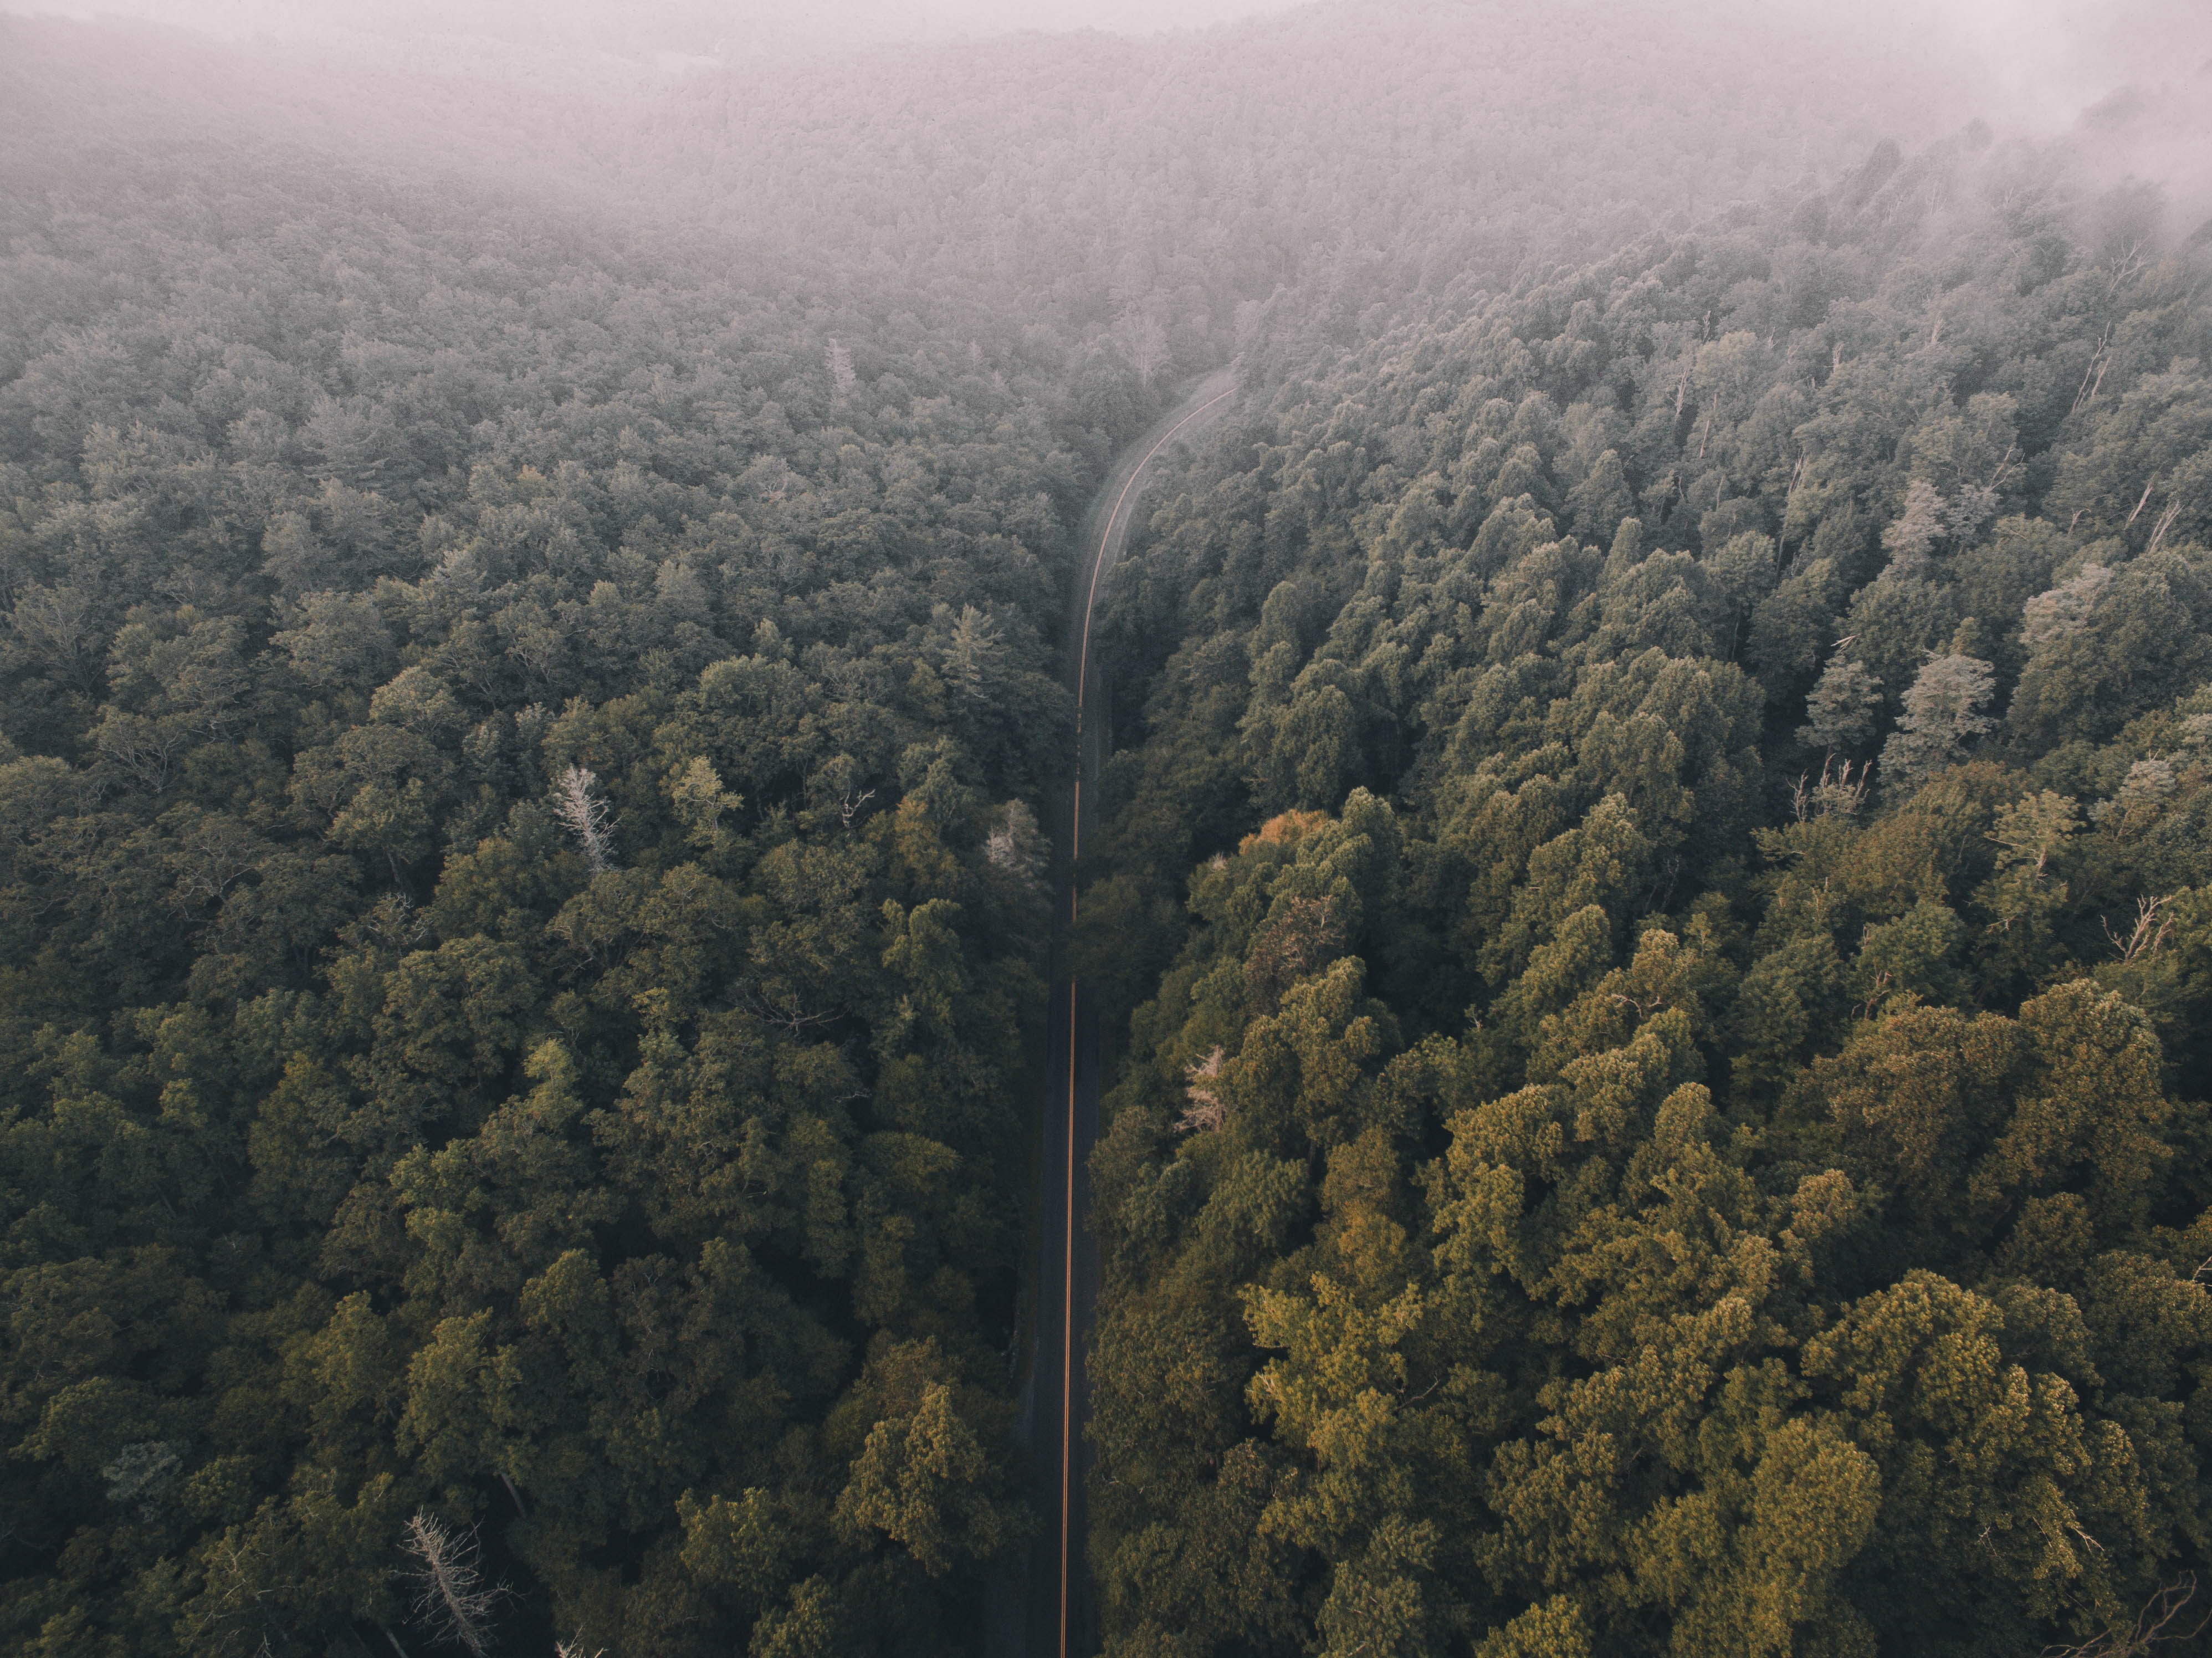 Narrow road cuts through a lush green forest covered in fog